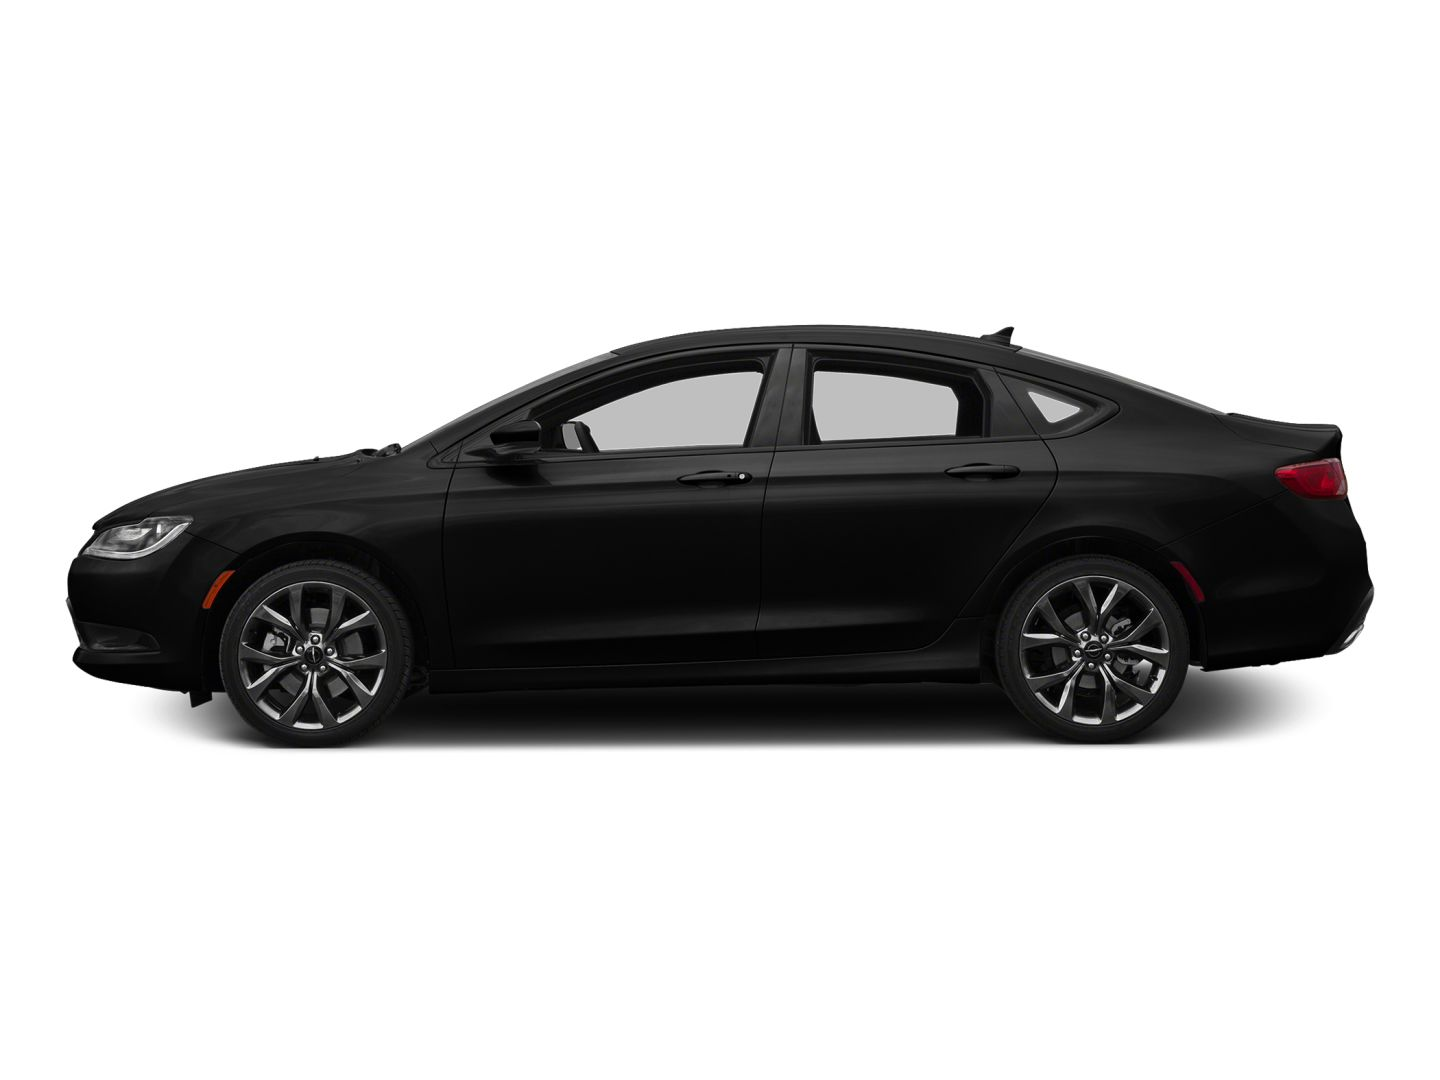 2015 Chrysler 200 Limited for sale in Leduc, Alberta